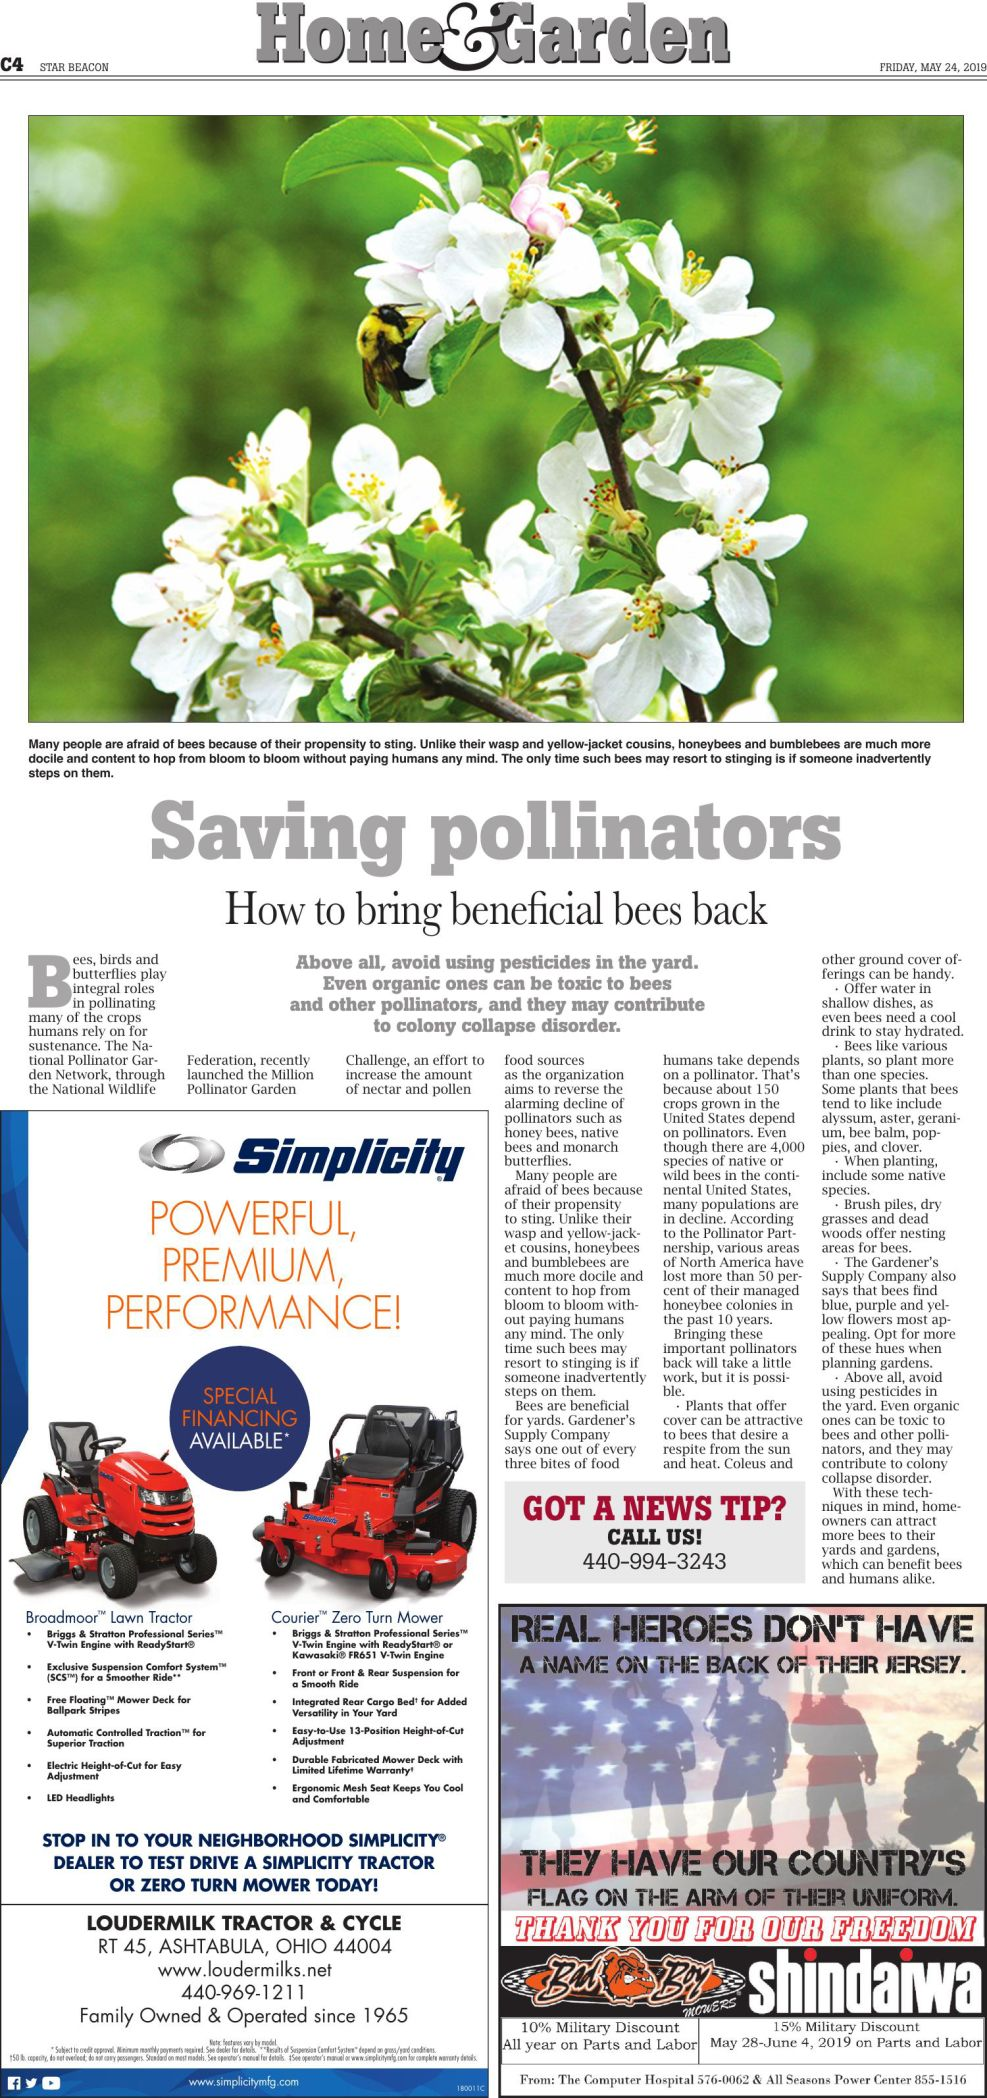 Home & Garden - May 24 Page 1